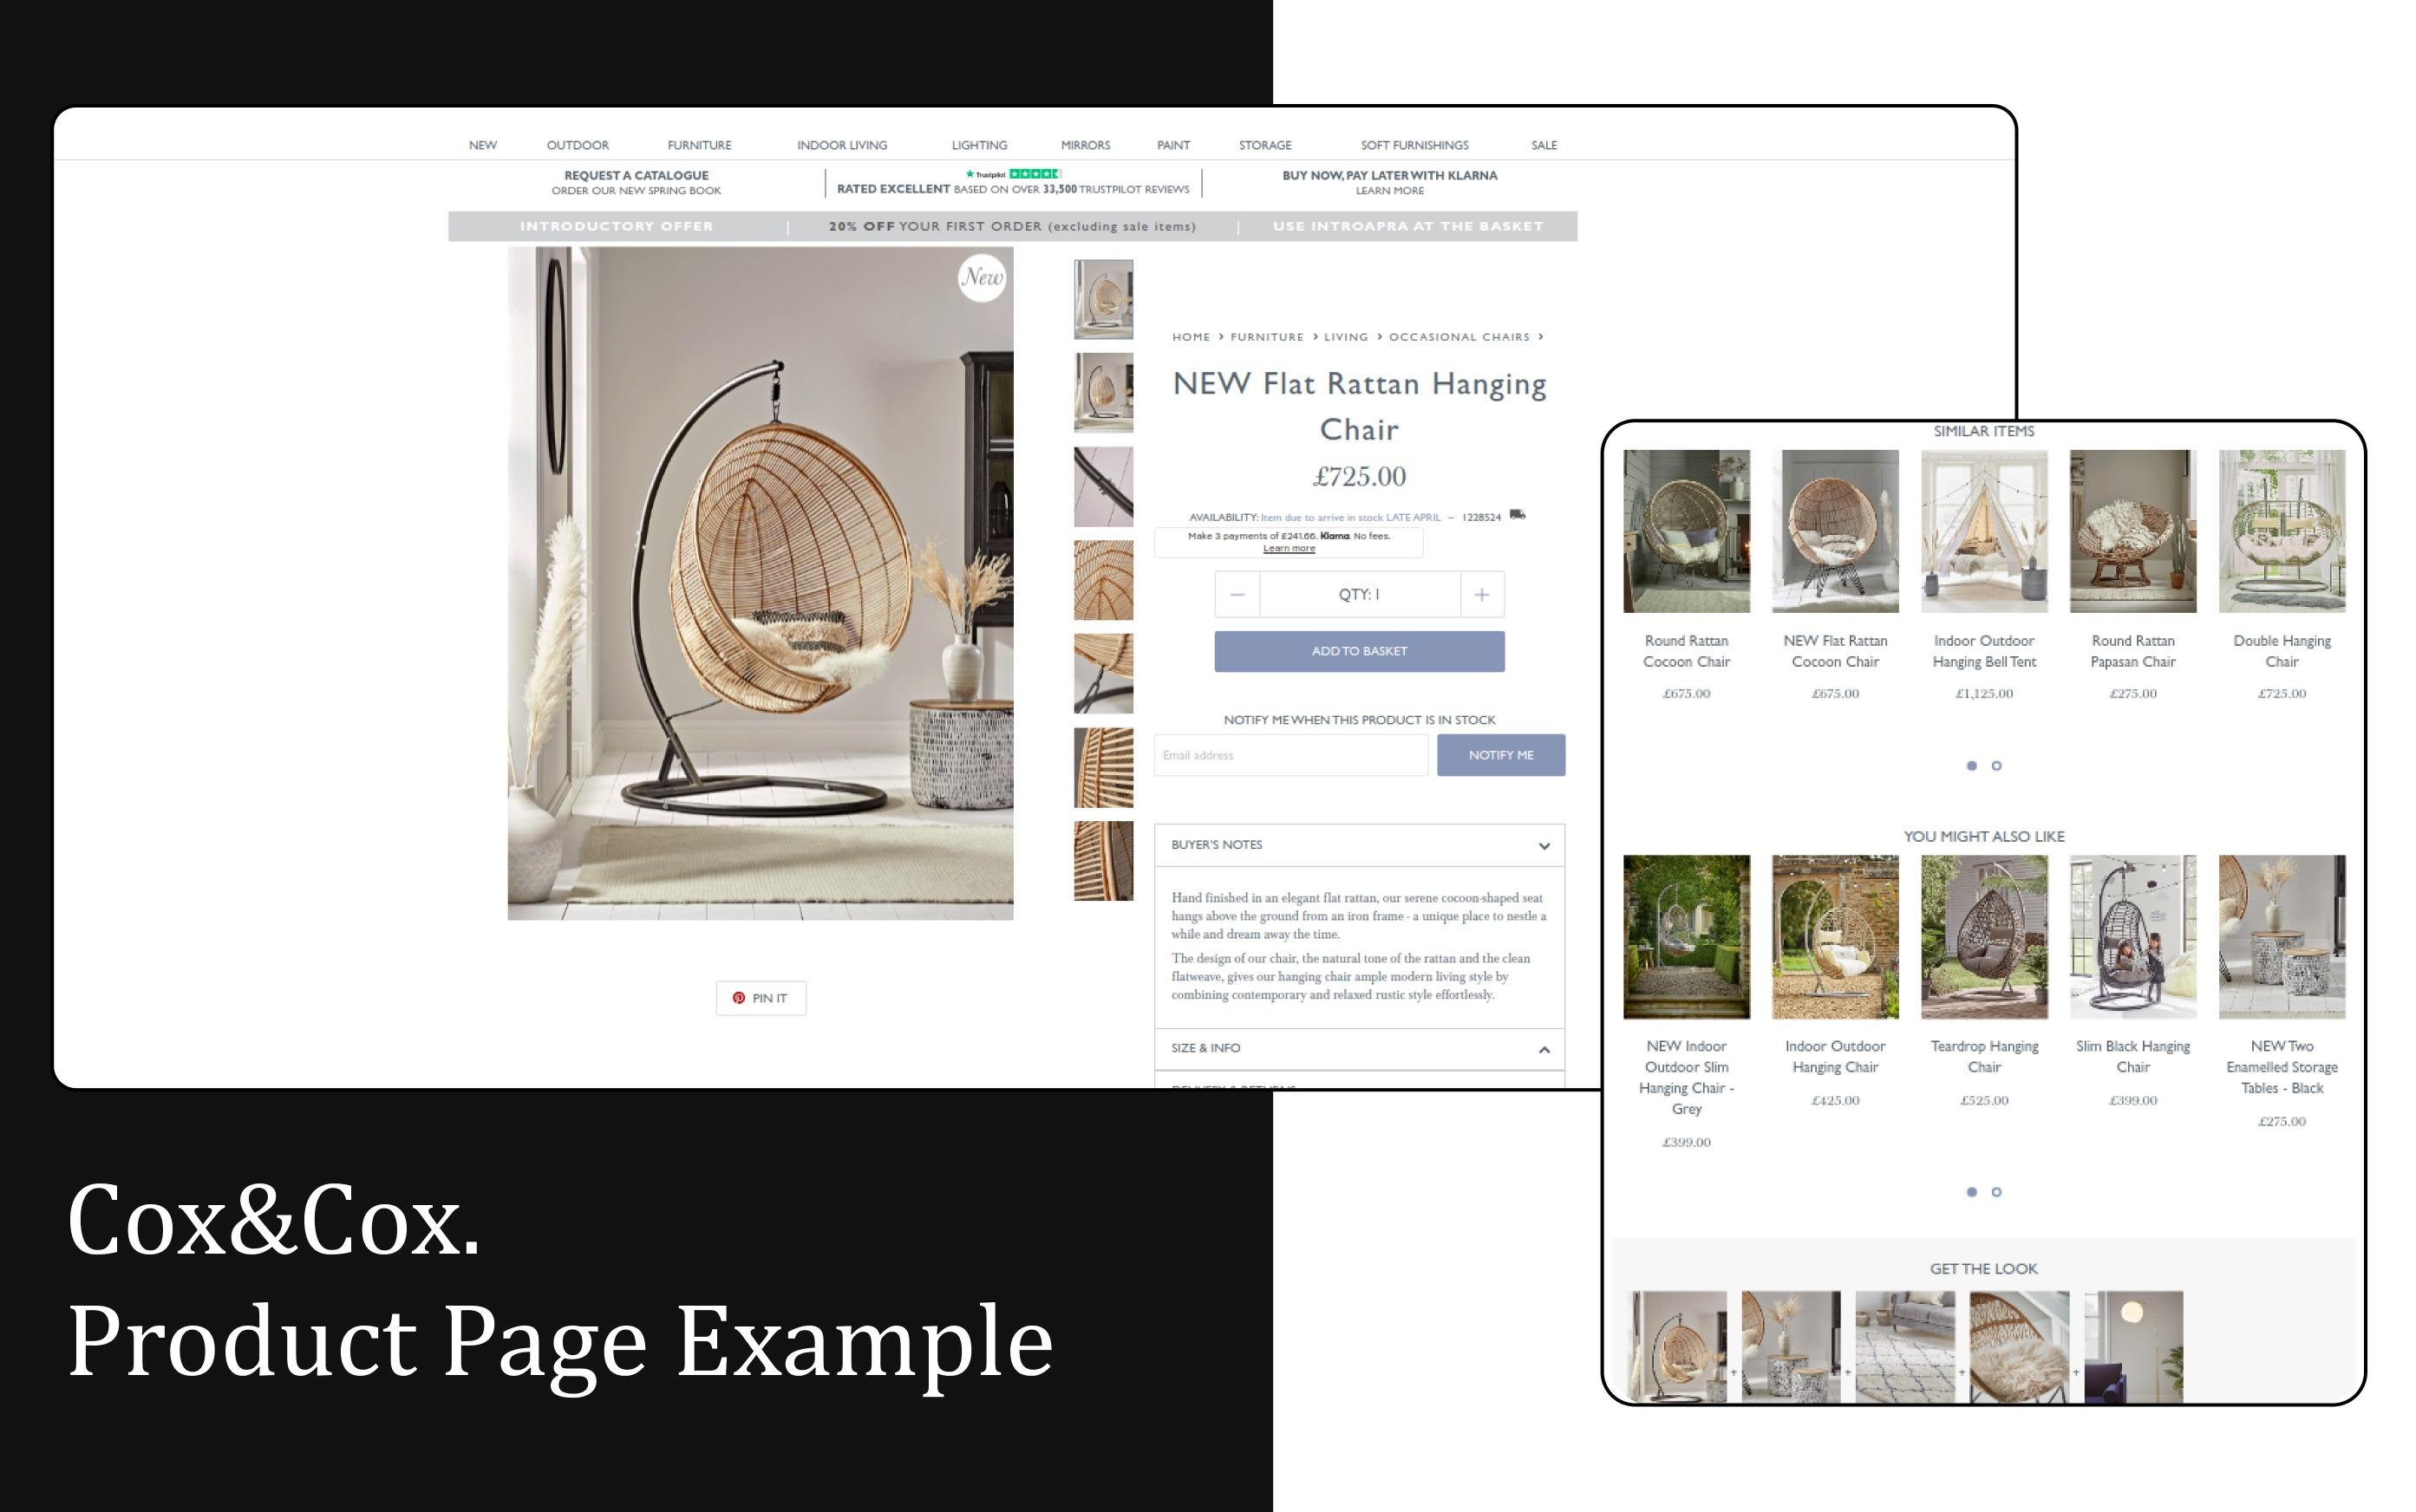 Cox&Cox. Product Page Exaple that really converts